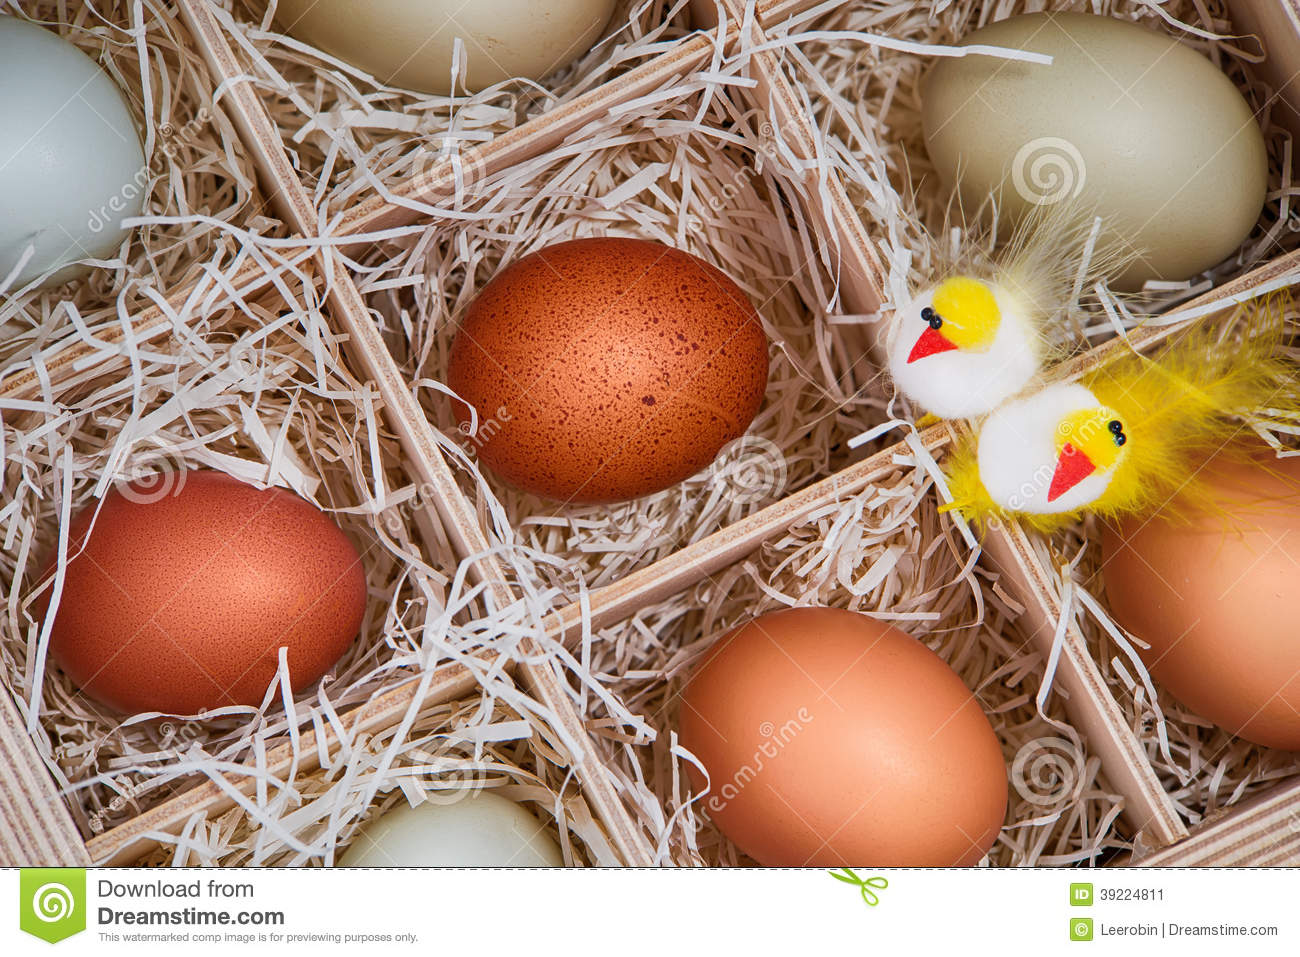 Decorative Chickens For Kitchen Decorative Easter Chickens With Eggs In Crate Stock Photo Image